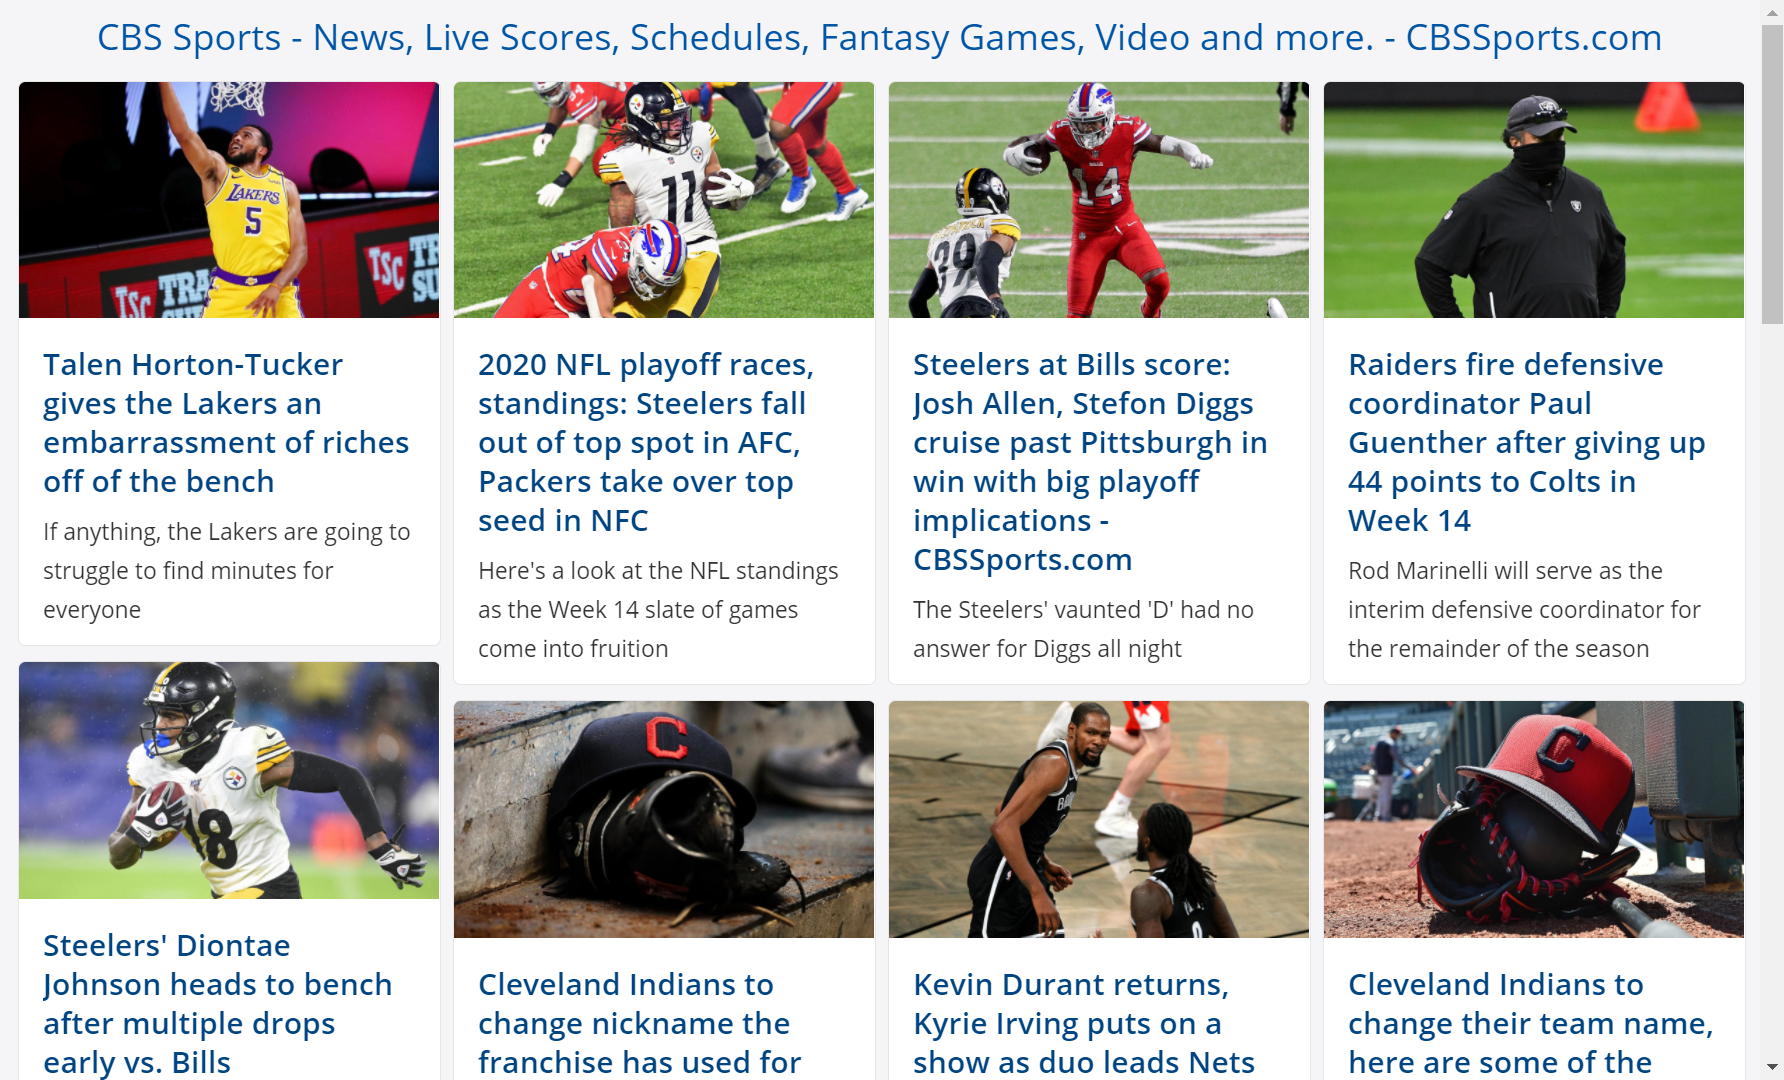 CBS Sports RSS feed